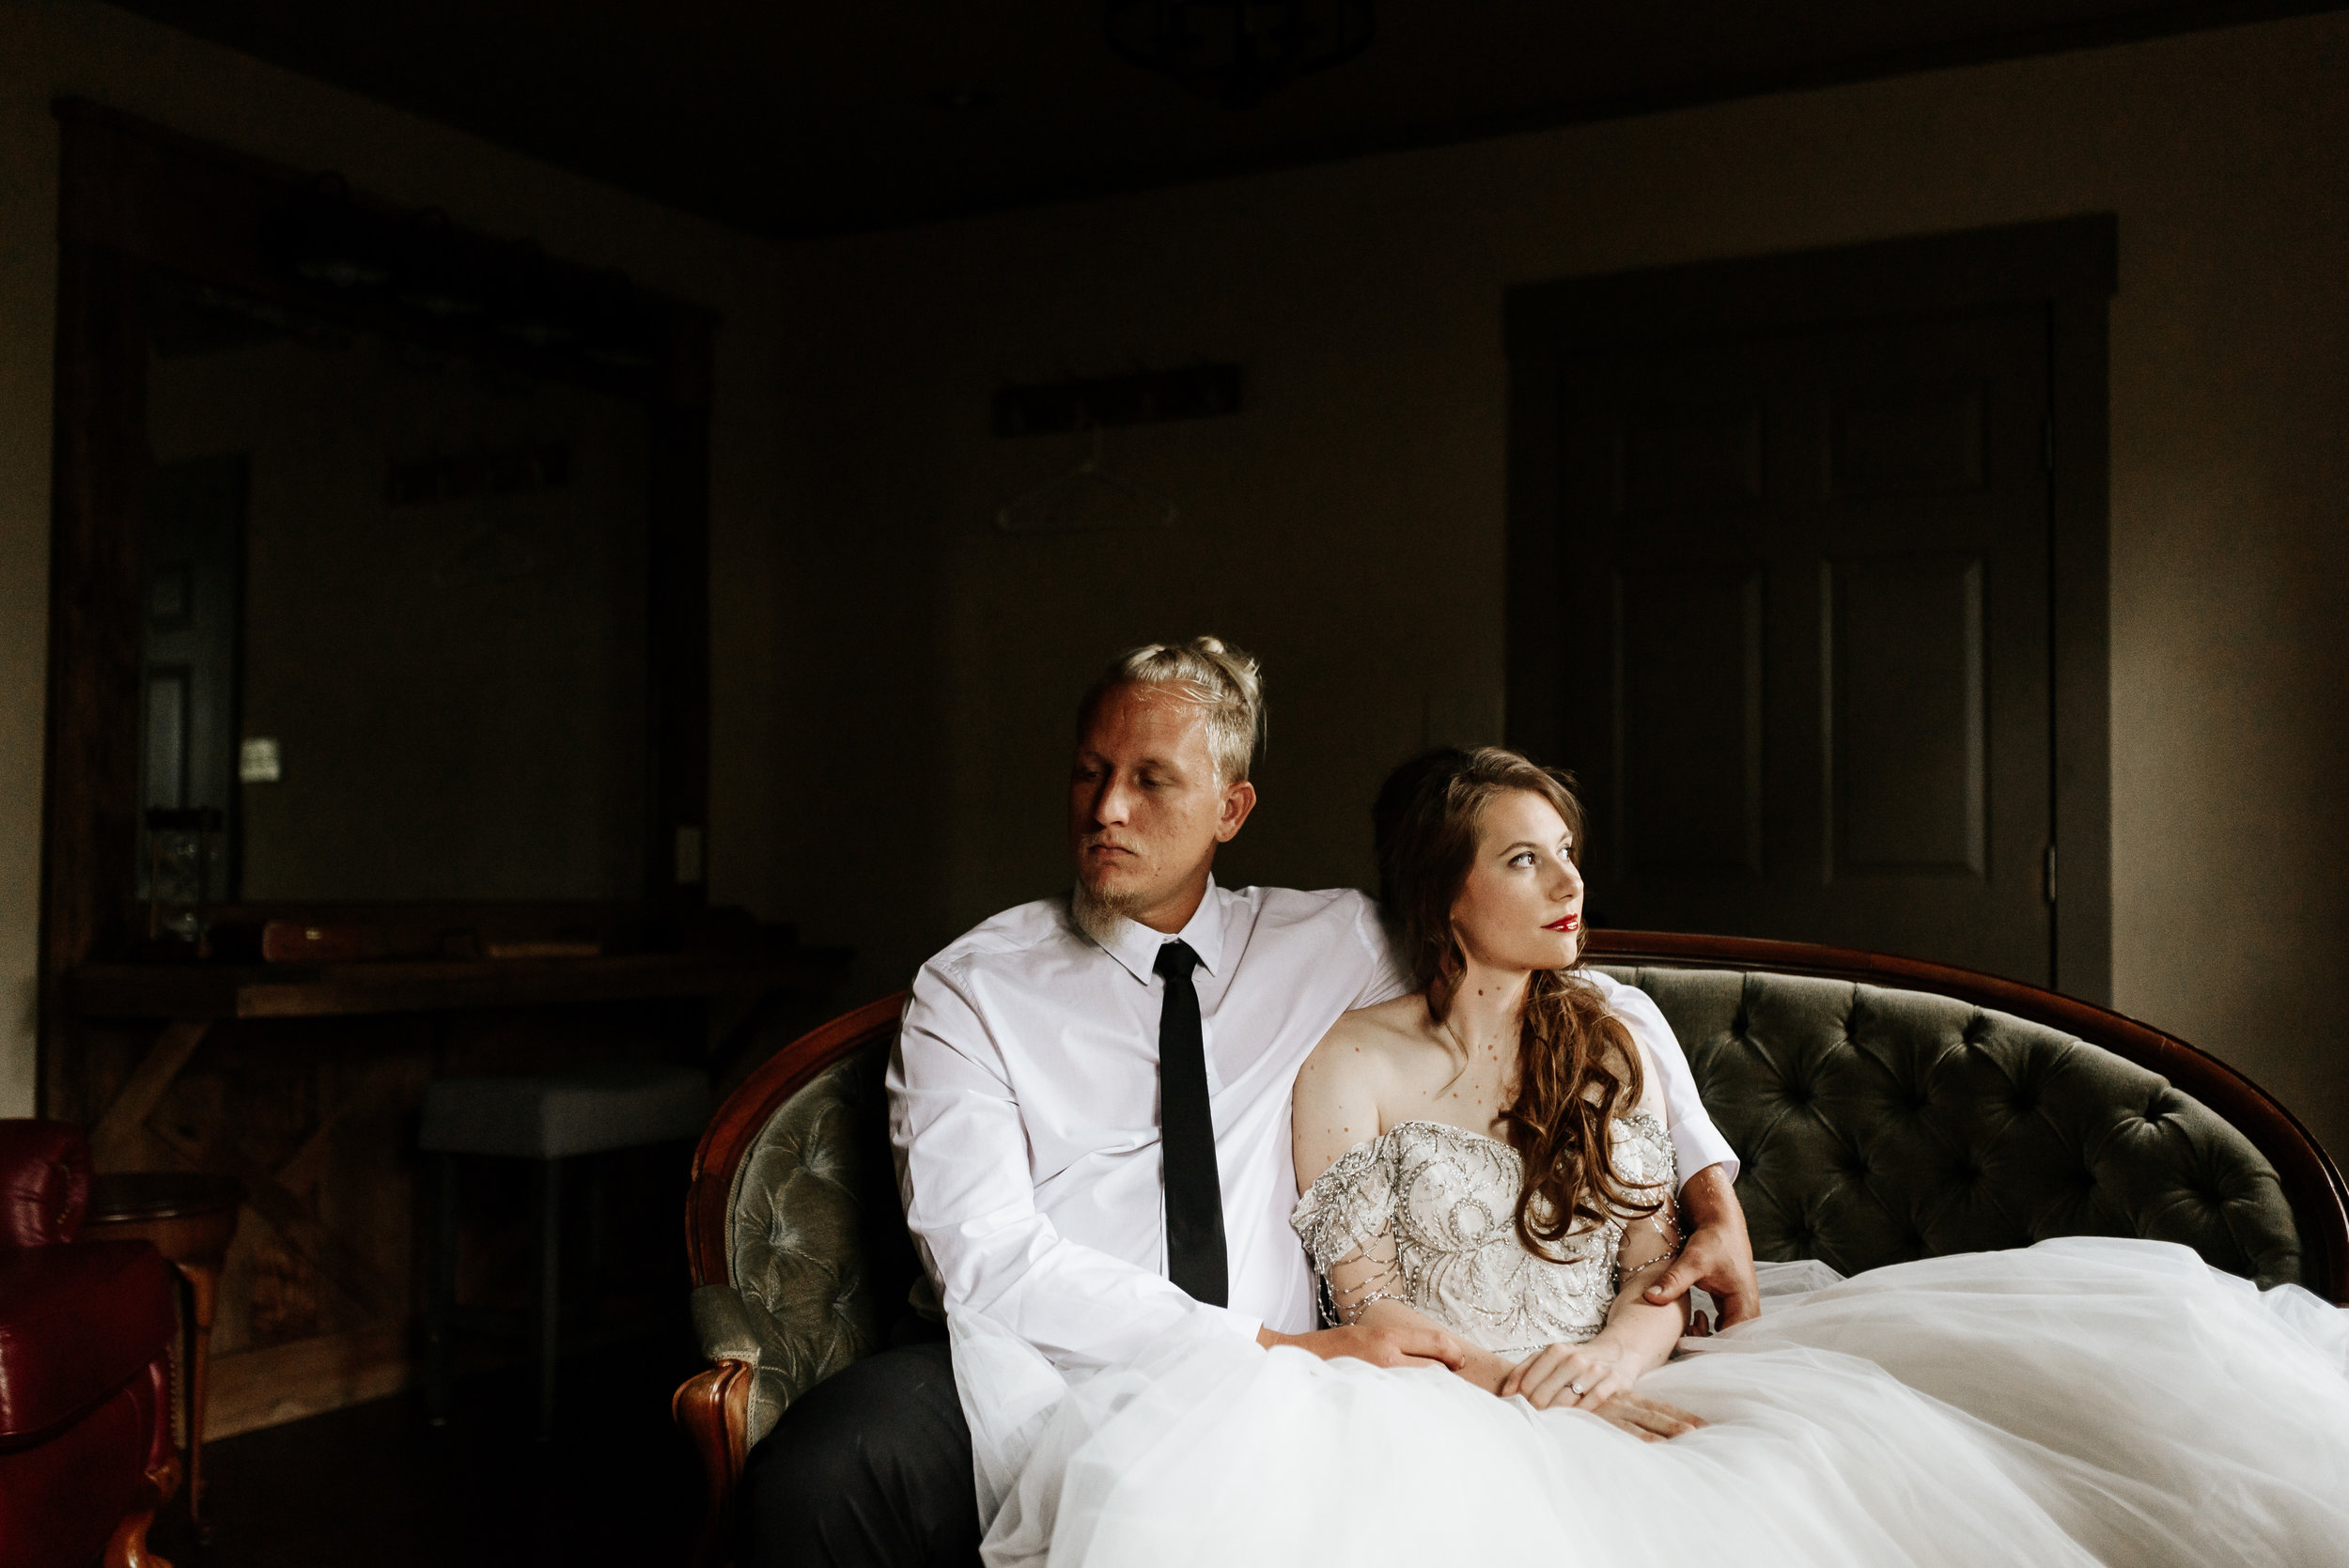 Grant-Station-Styled-Shoot-Whimsical-Moody-Fairytale-Wedding-Photography-by-V-9646.jpg